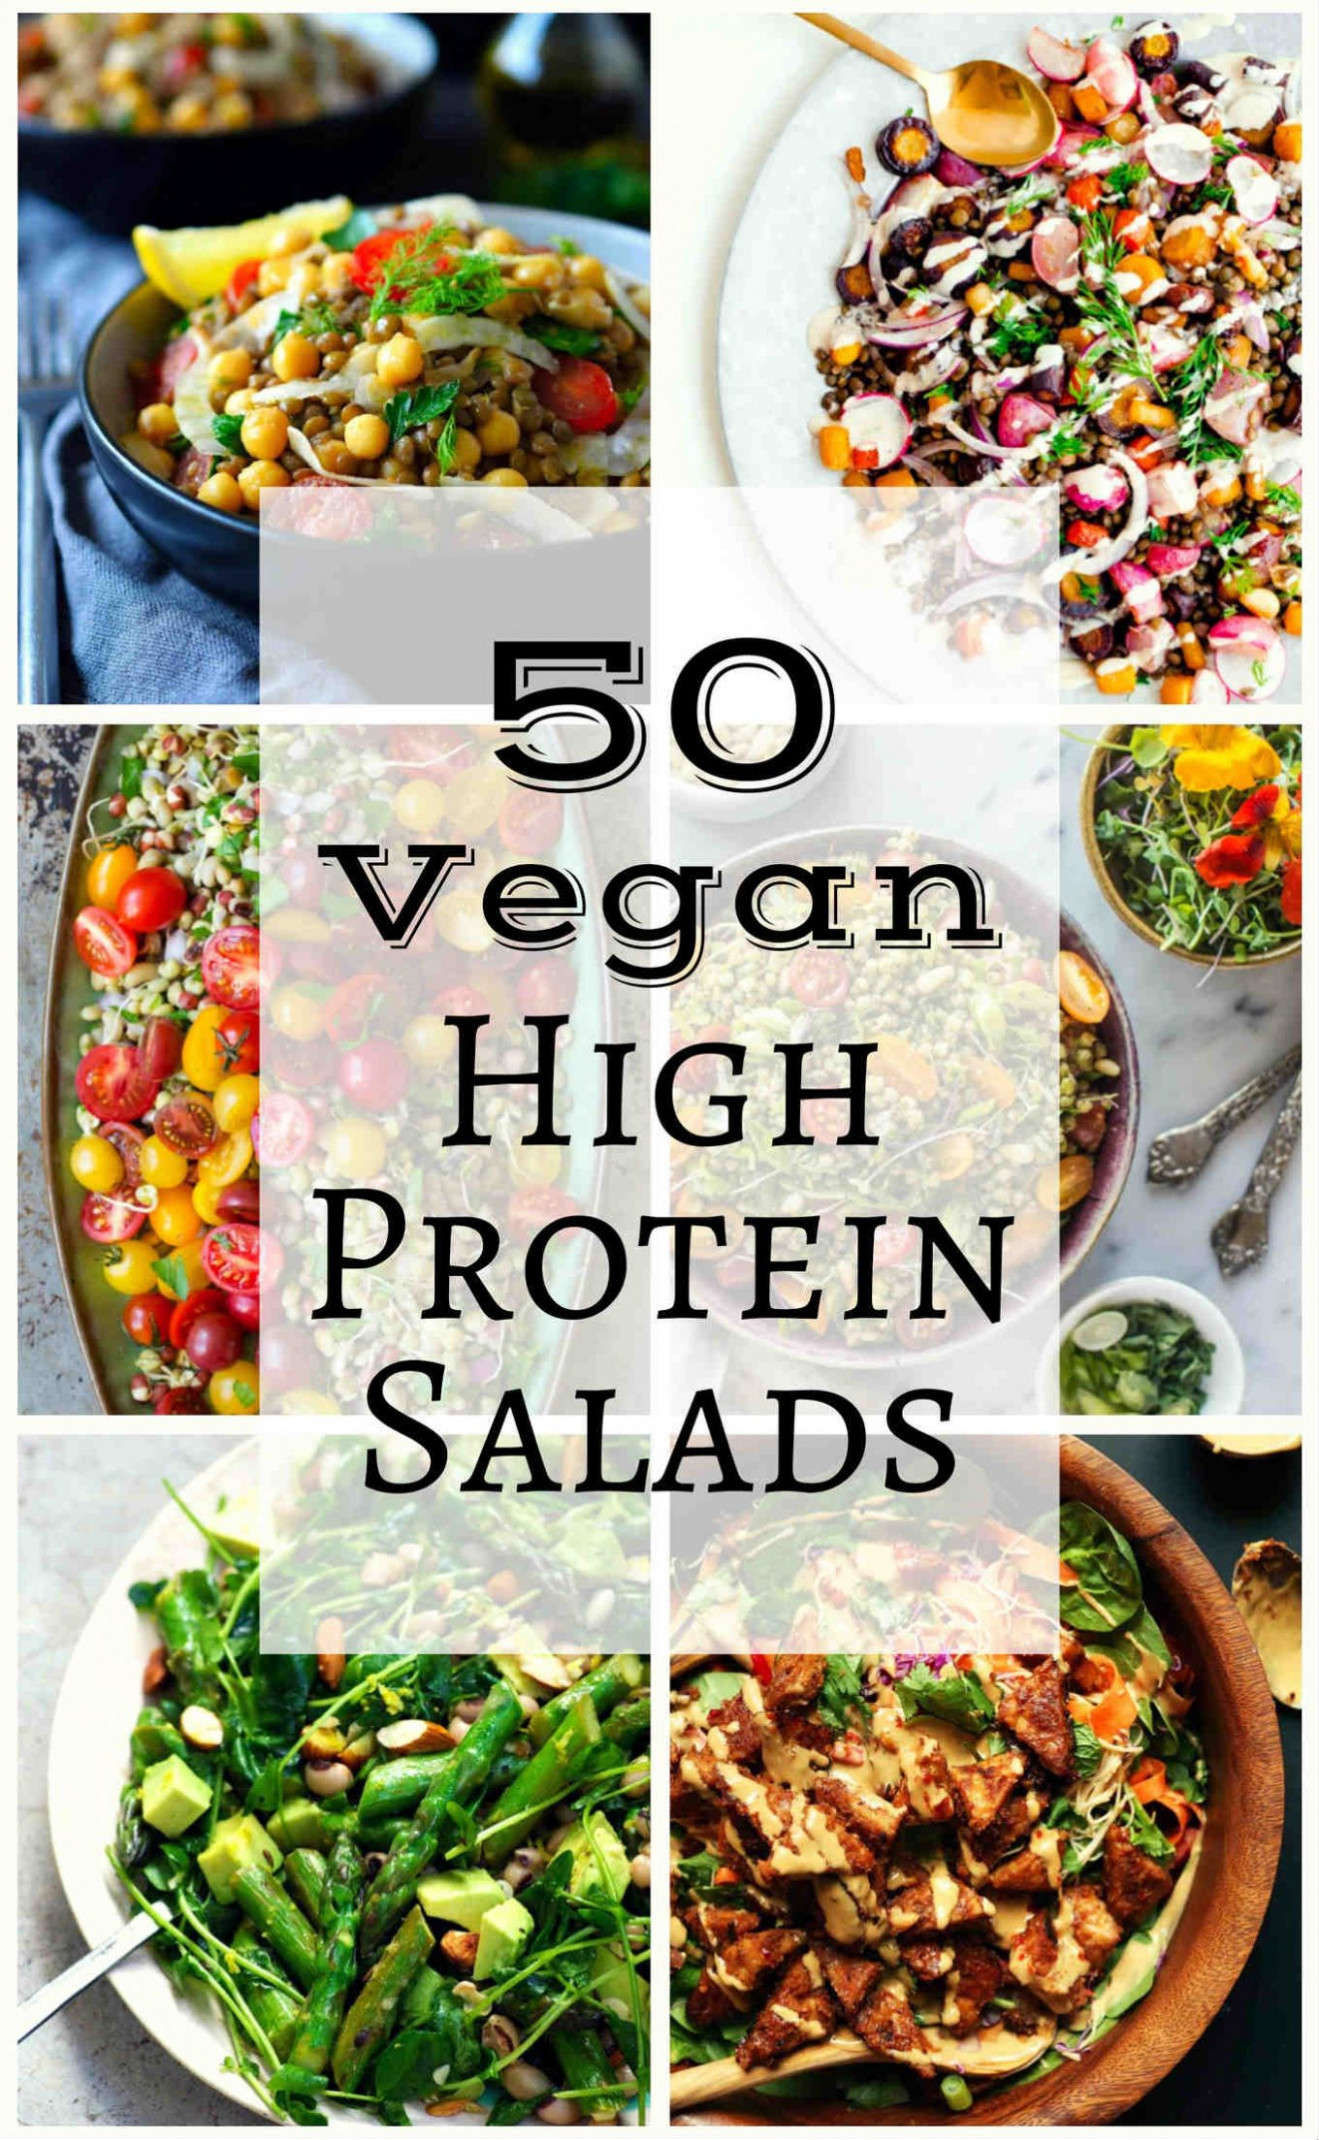 50 Vegan High Protein Salads | The Stingy Vegan - Vegetarian Recipes That Are High In Protein